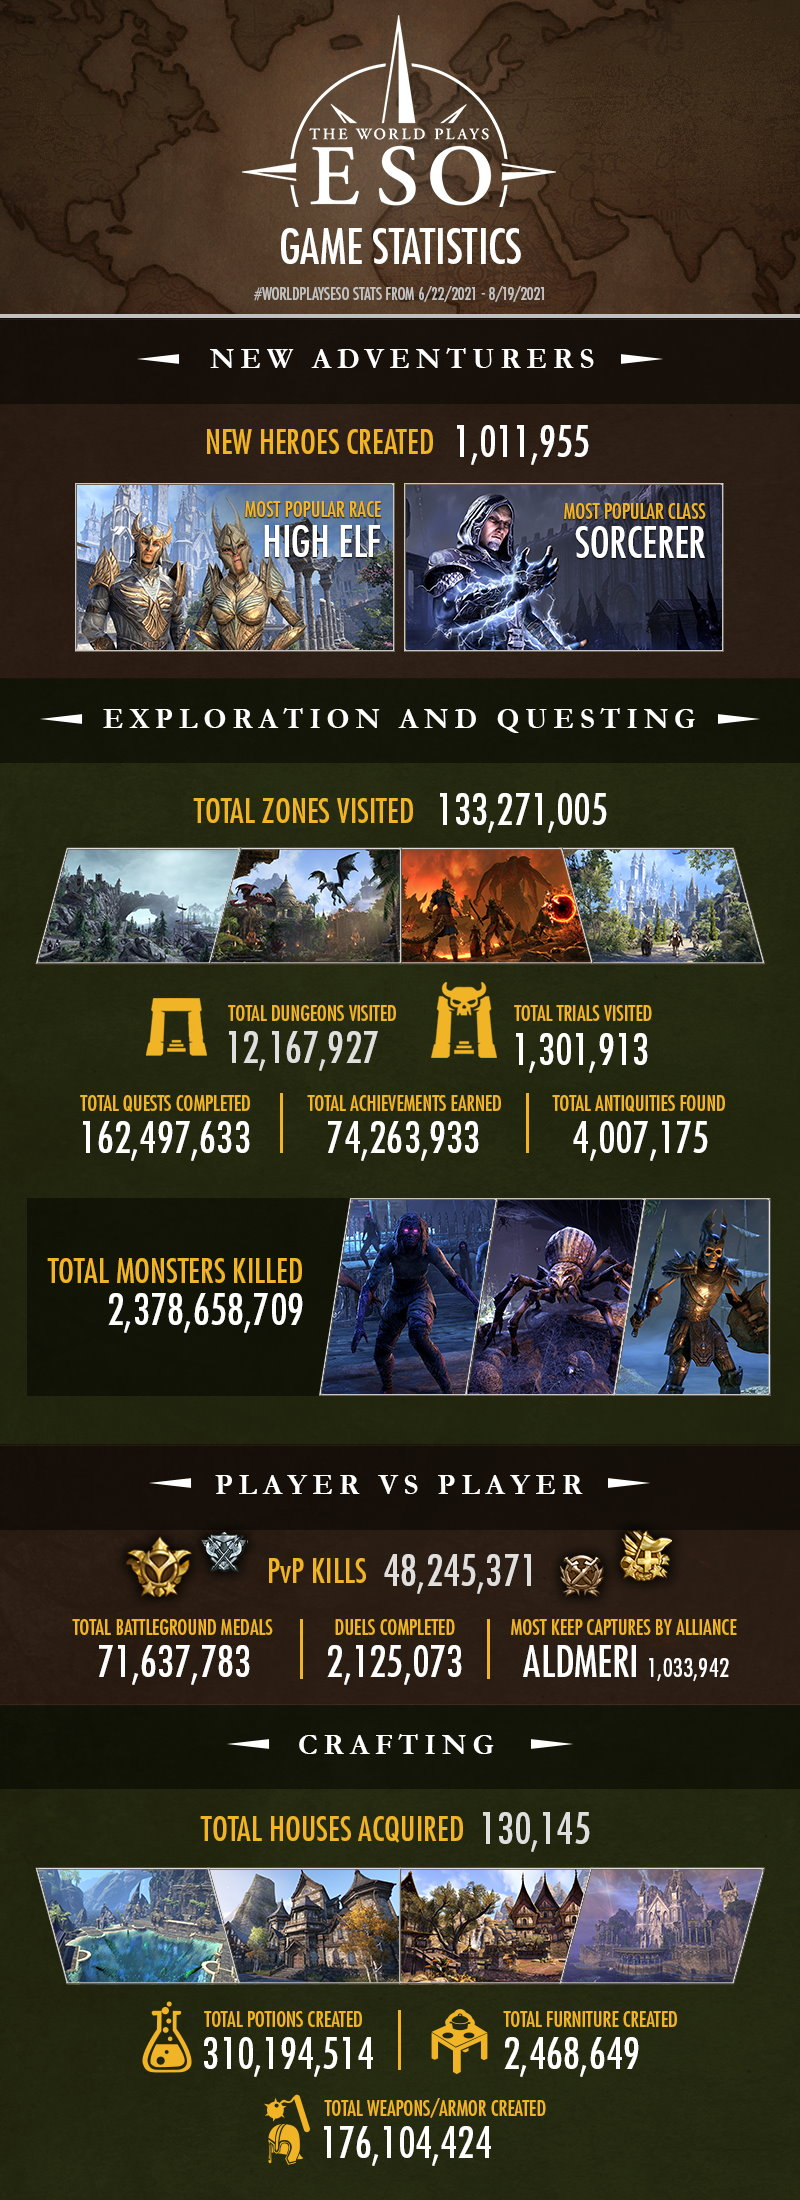 World Plays ESO, among other things, withdrew 4 million antiquities